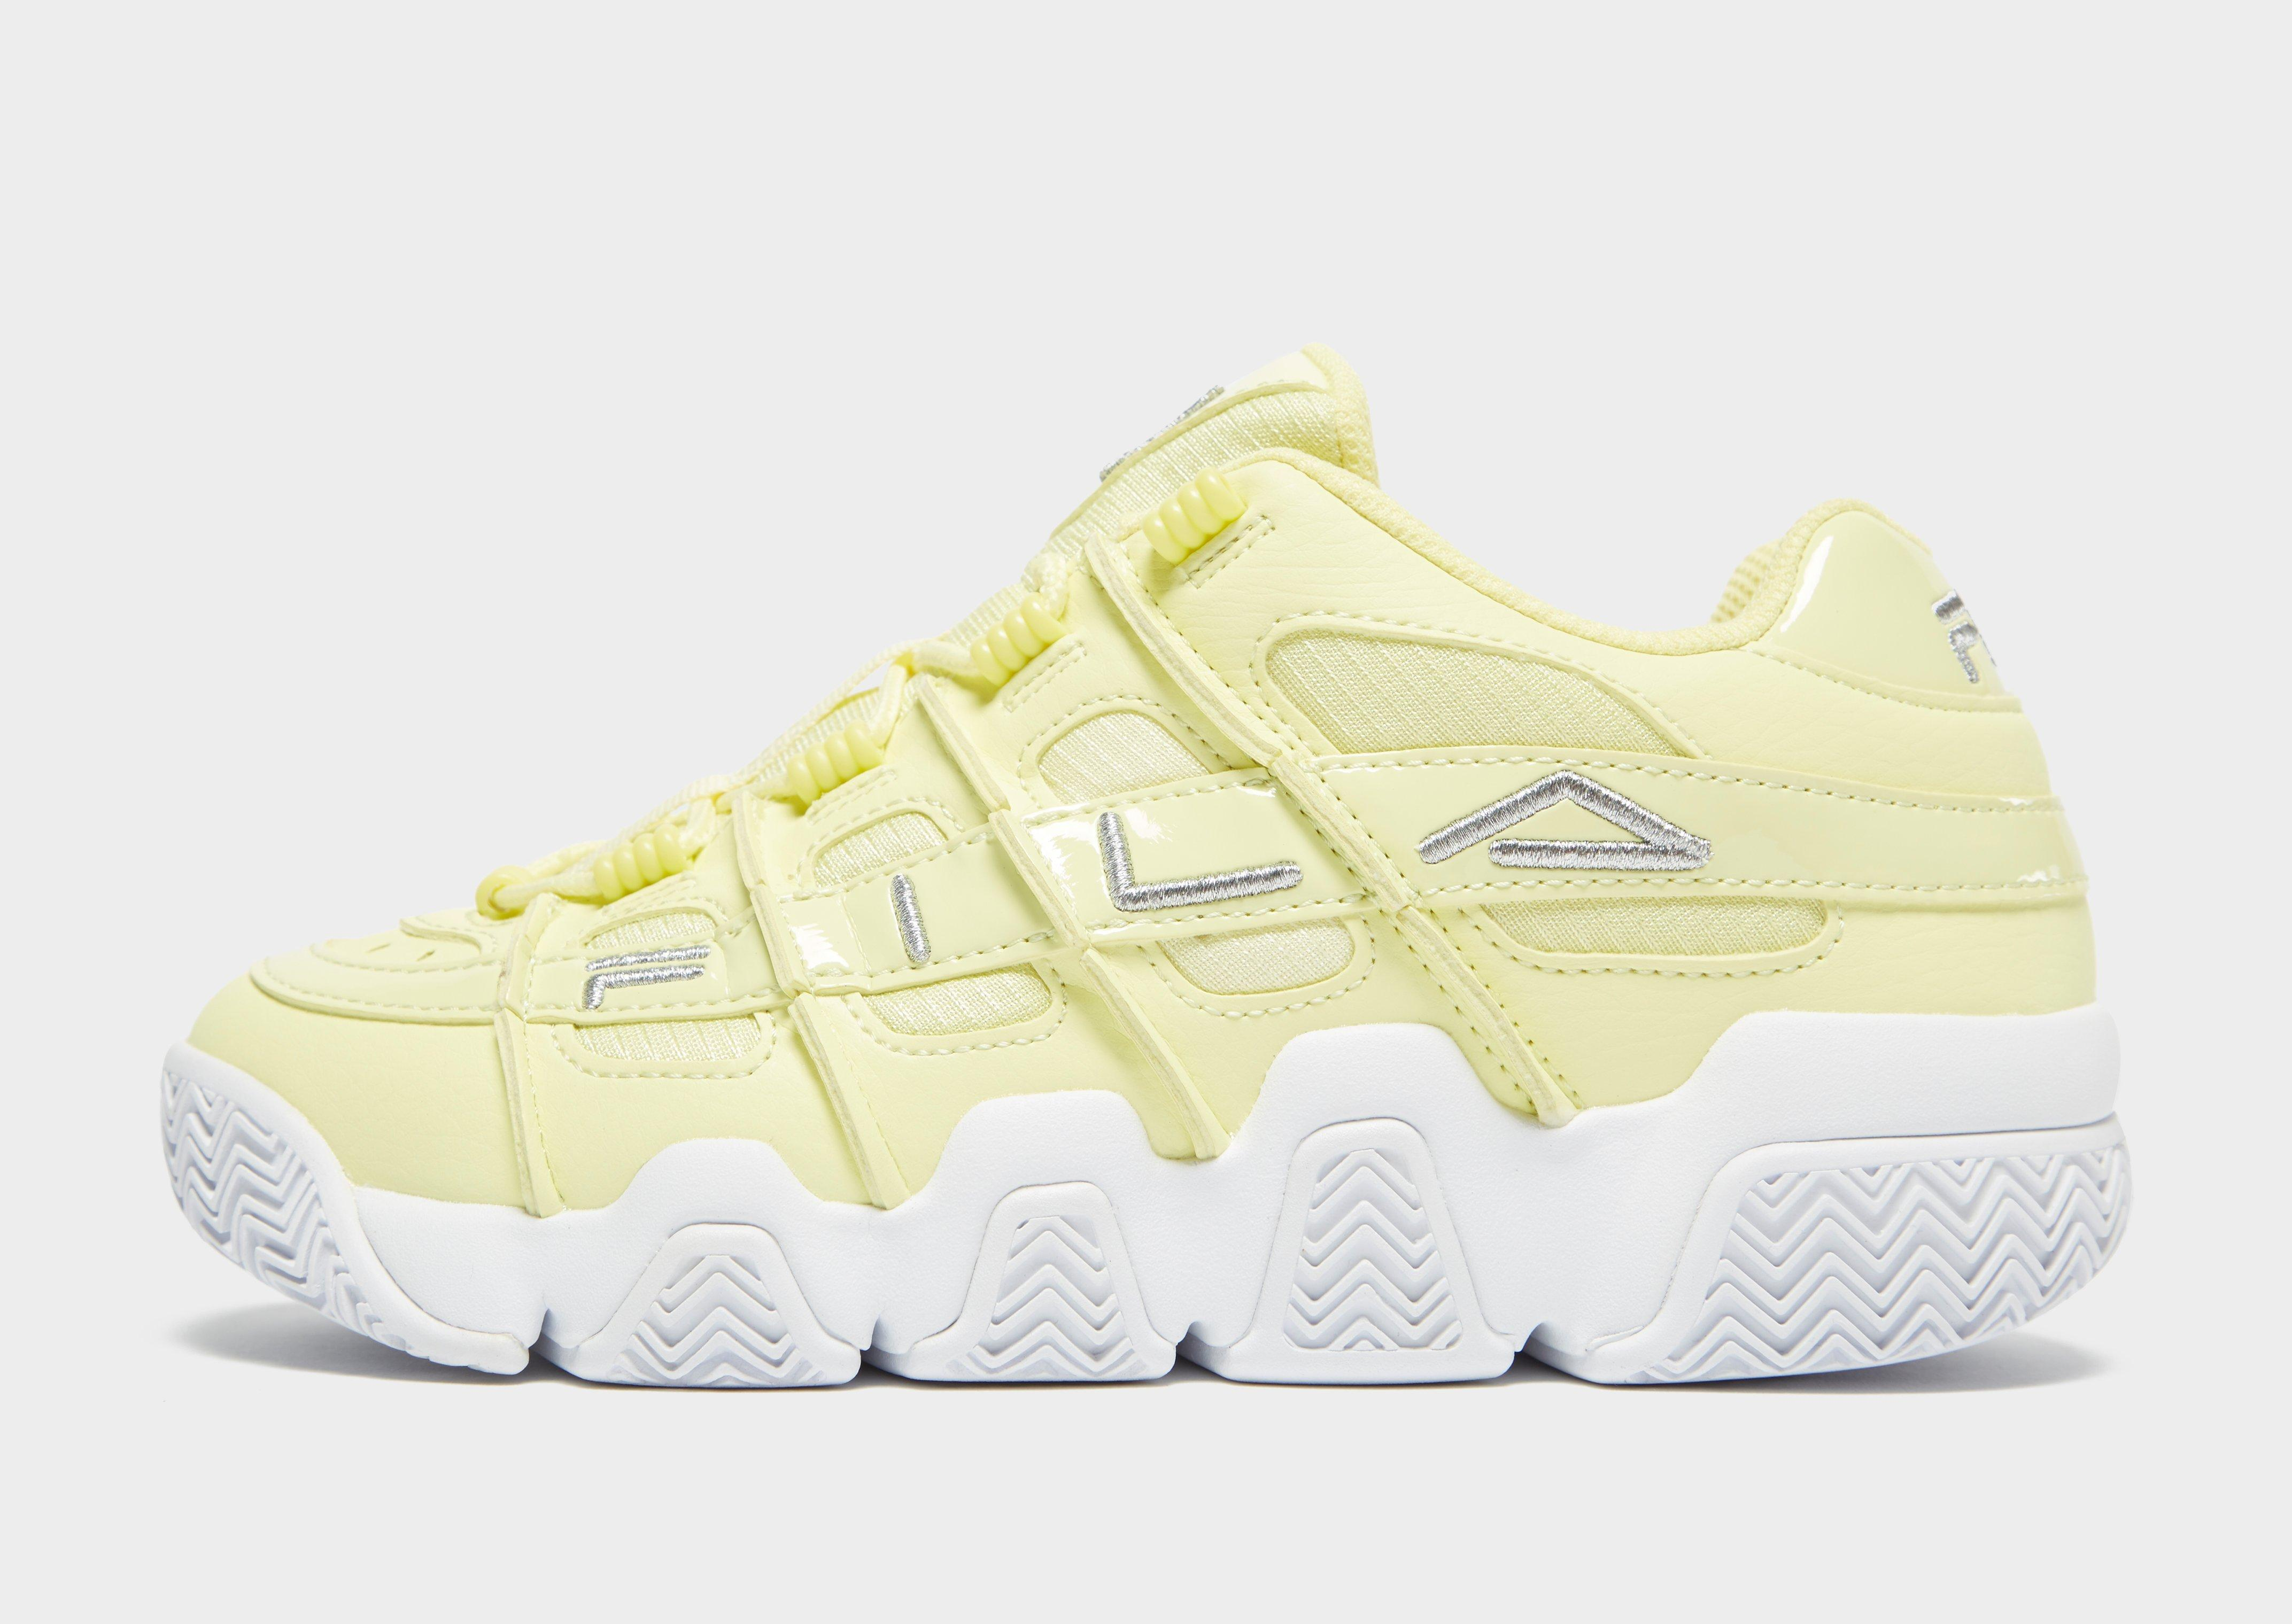 Details about New Fila Uproot Women's